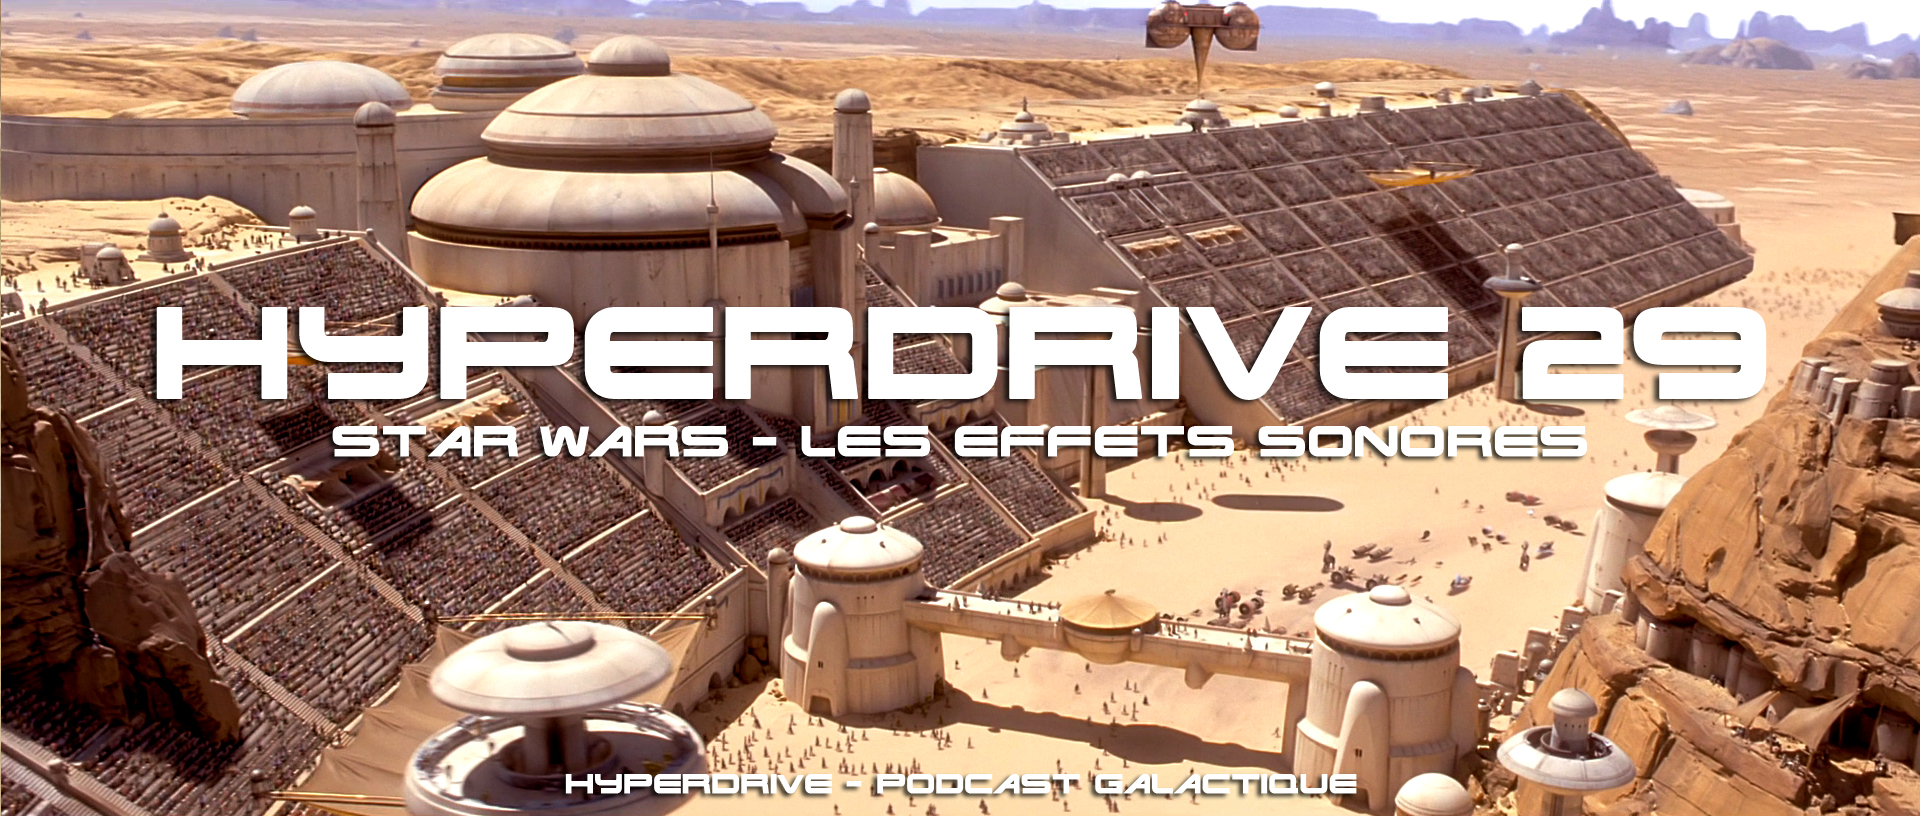 hyperdrive effets sonores dans Star Wars